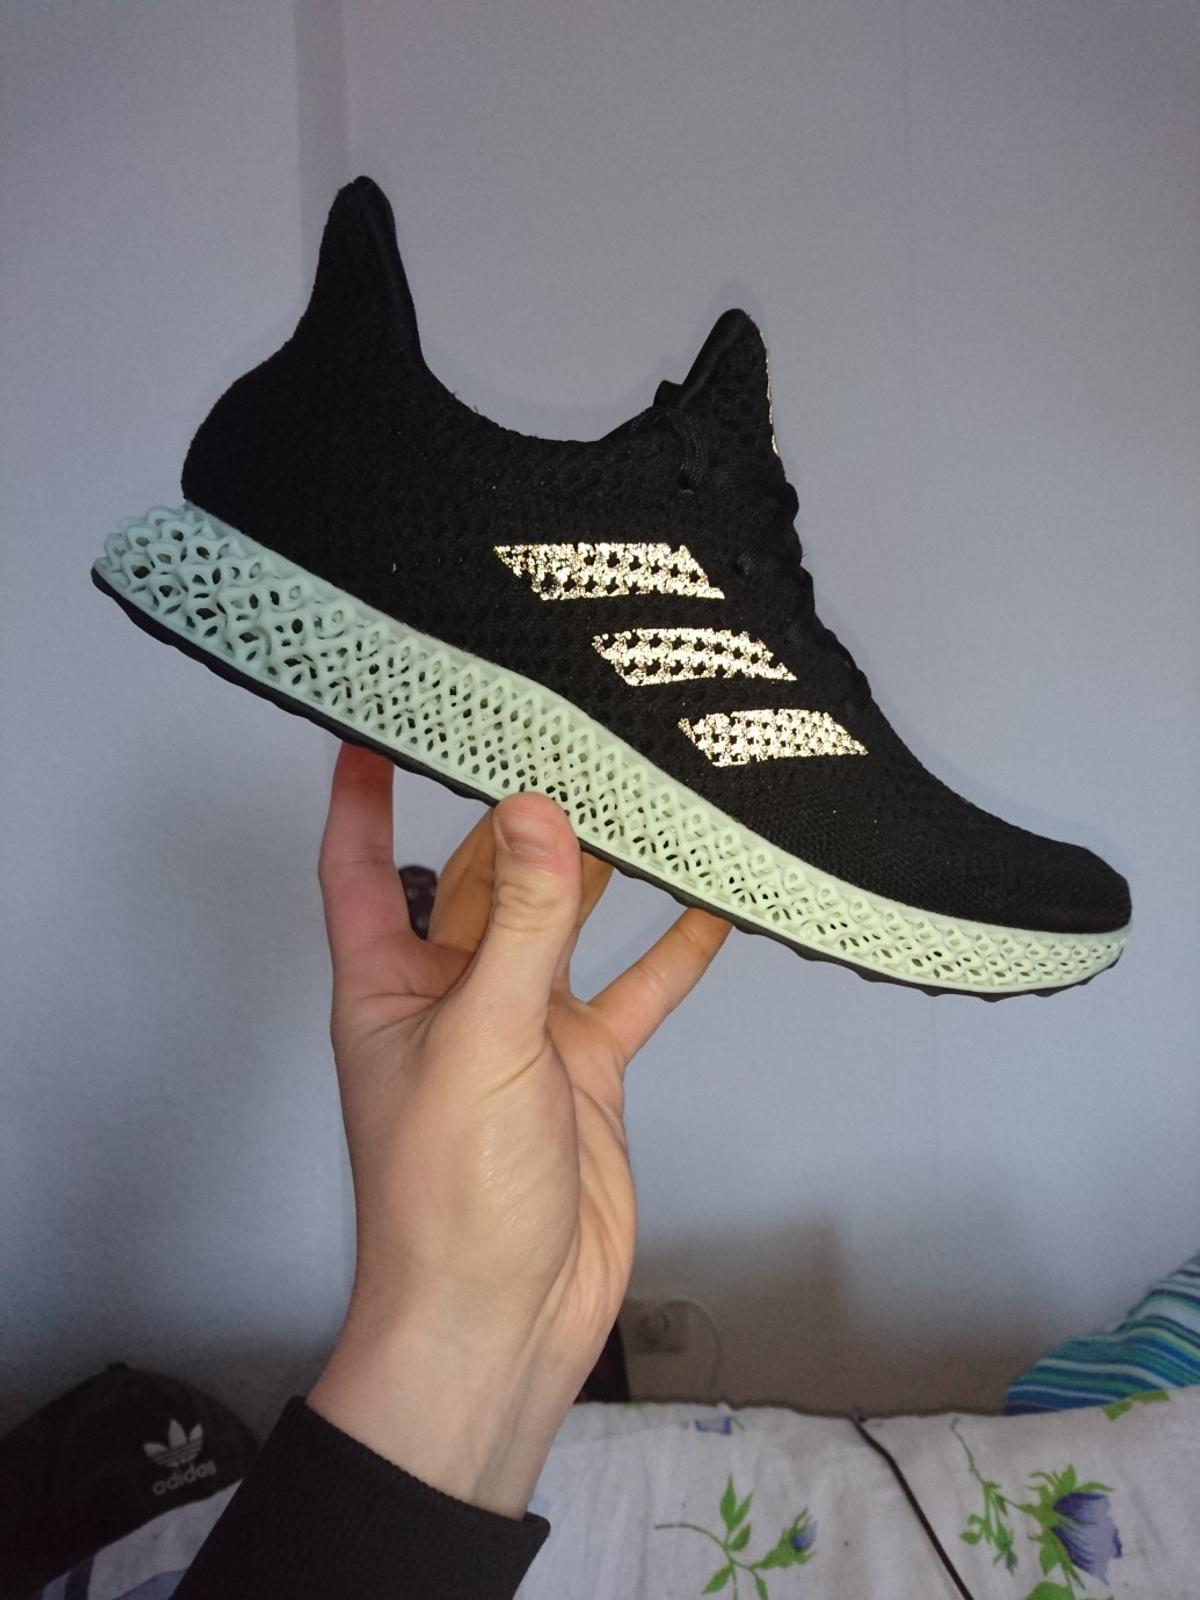 6934a3d5ce3eb Adidas futurecraft 4d in 80538 München for €1